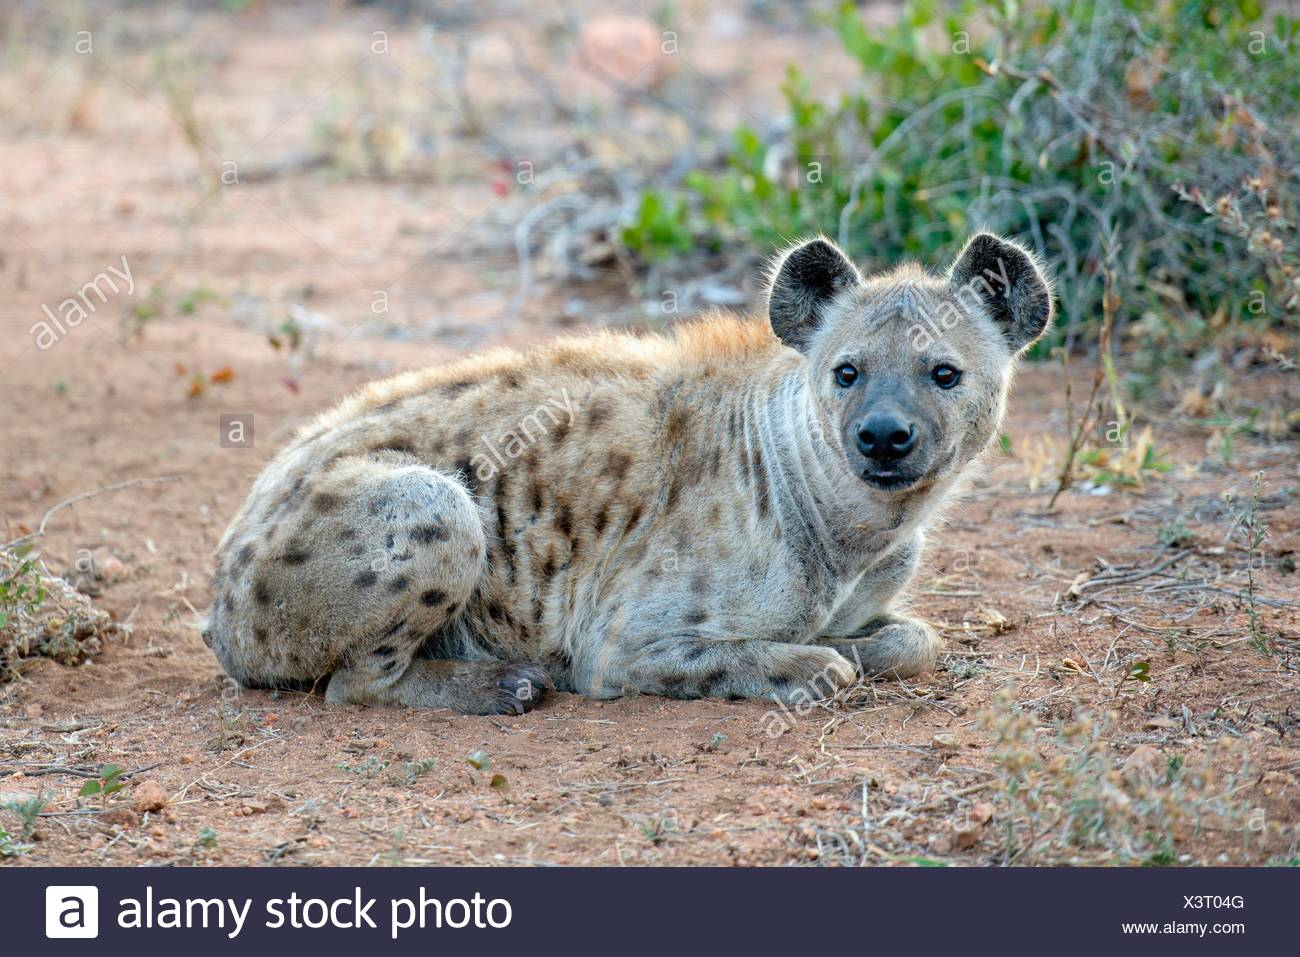 Spotted Hyena (Crocuta crocuta) aka Laughing Hyena lying on ground, Kruger National Park, Transvaal, South Africa. Stock Photo